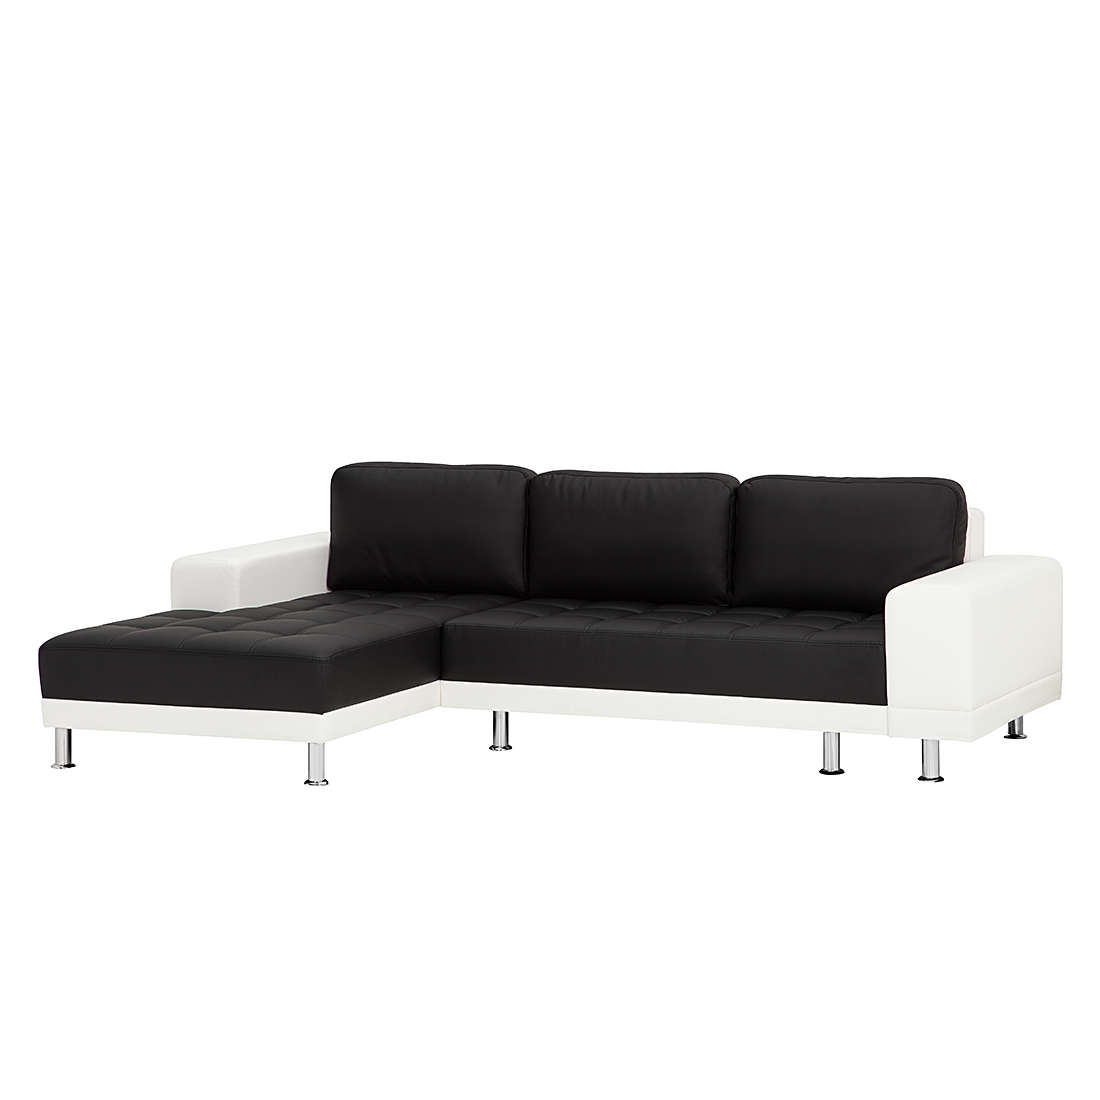 ecksofa schwarz wei schlafsofa schlafcouch sofa couch eckcouch g stesofa neu ebay. Black Bedroom Furniture Sets. Home Design Ideas